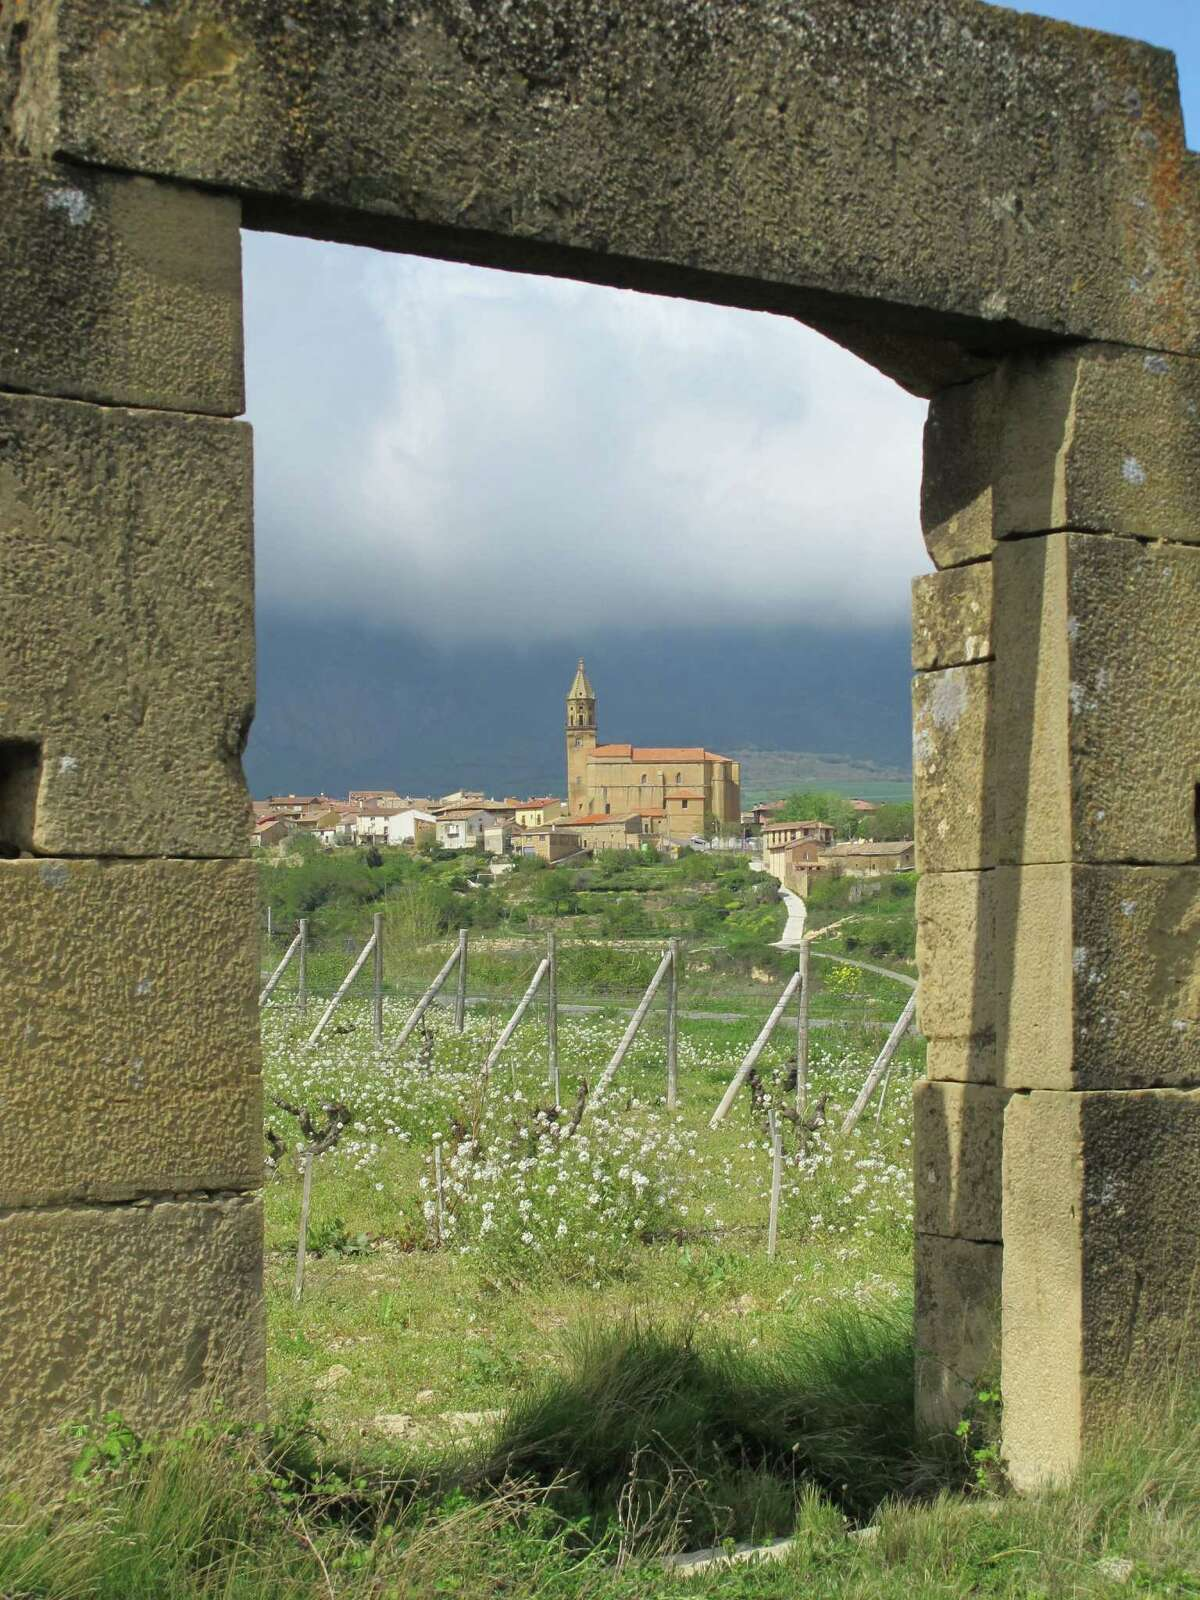 Traveling in Spain, Gribou parked his rental car on the side of the road and shot this view of a church in the wine region of Rioja.